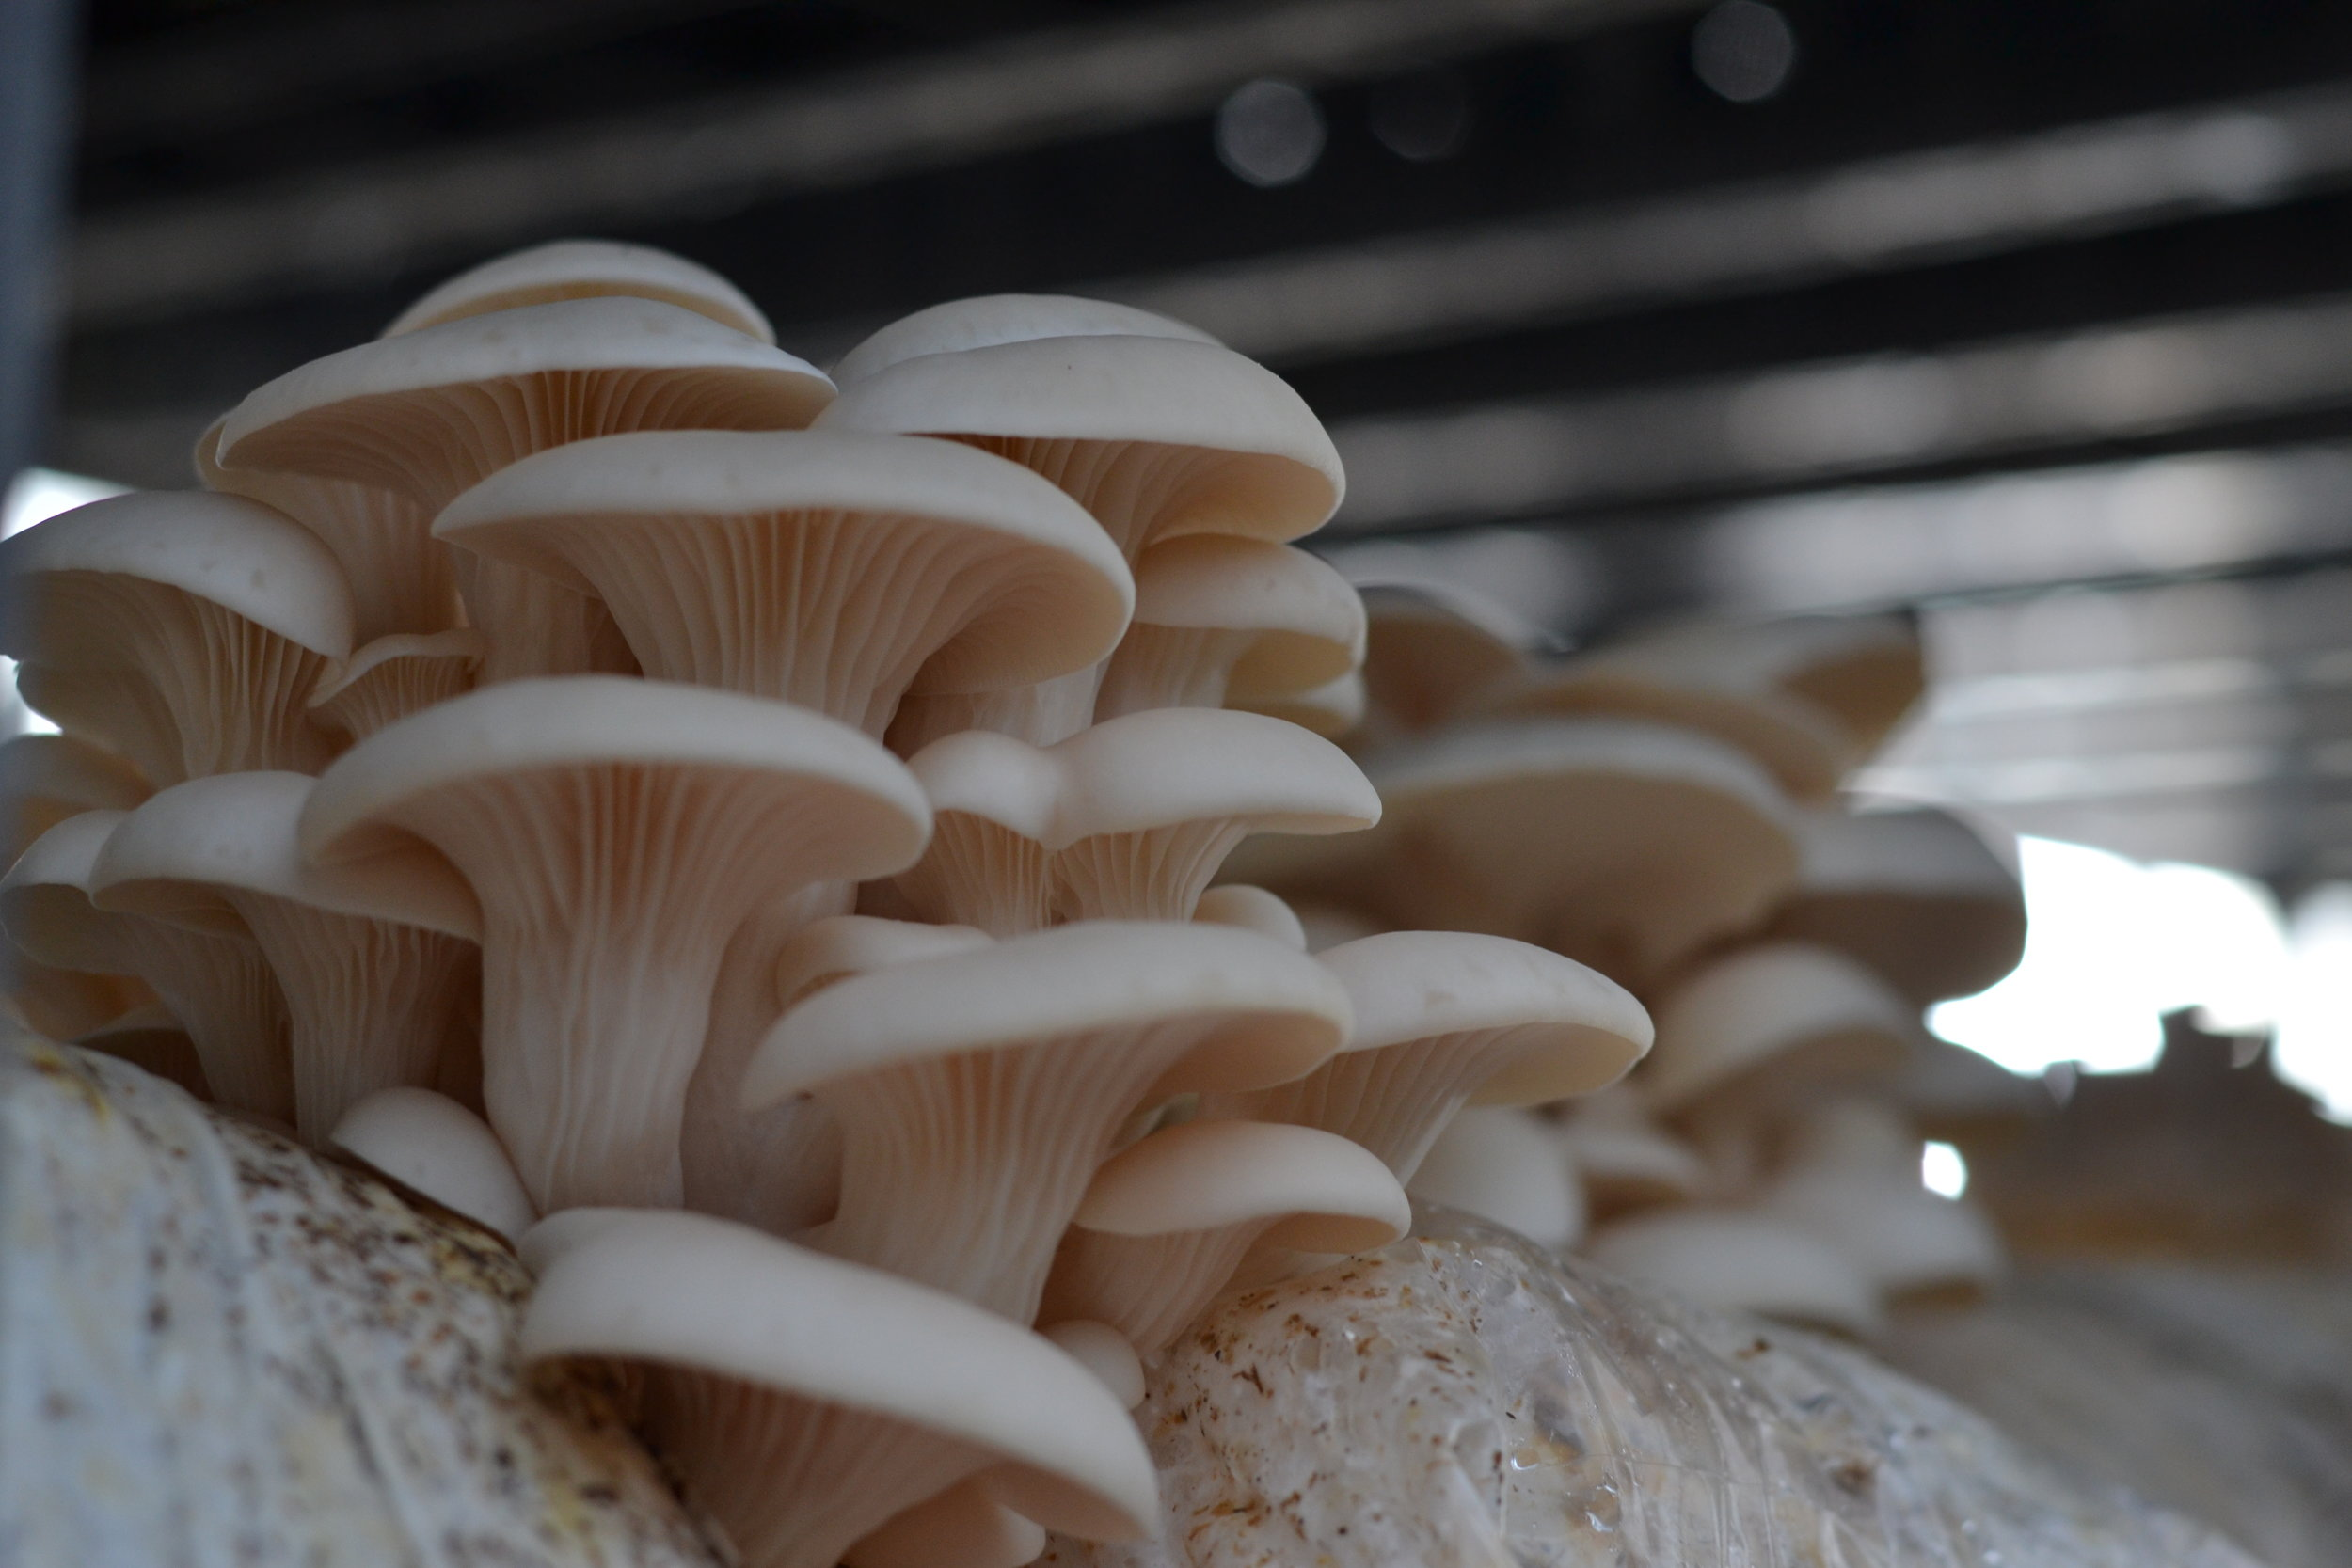 NEW - Tony and Tegan from FreshCap Mushrooms recently visited our farm and wrote a great article about what we do here at WTF.